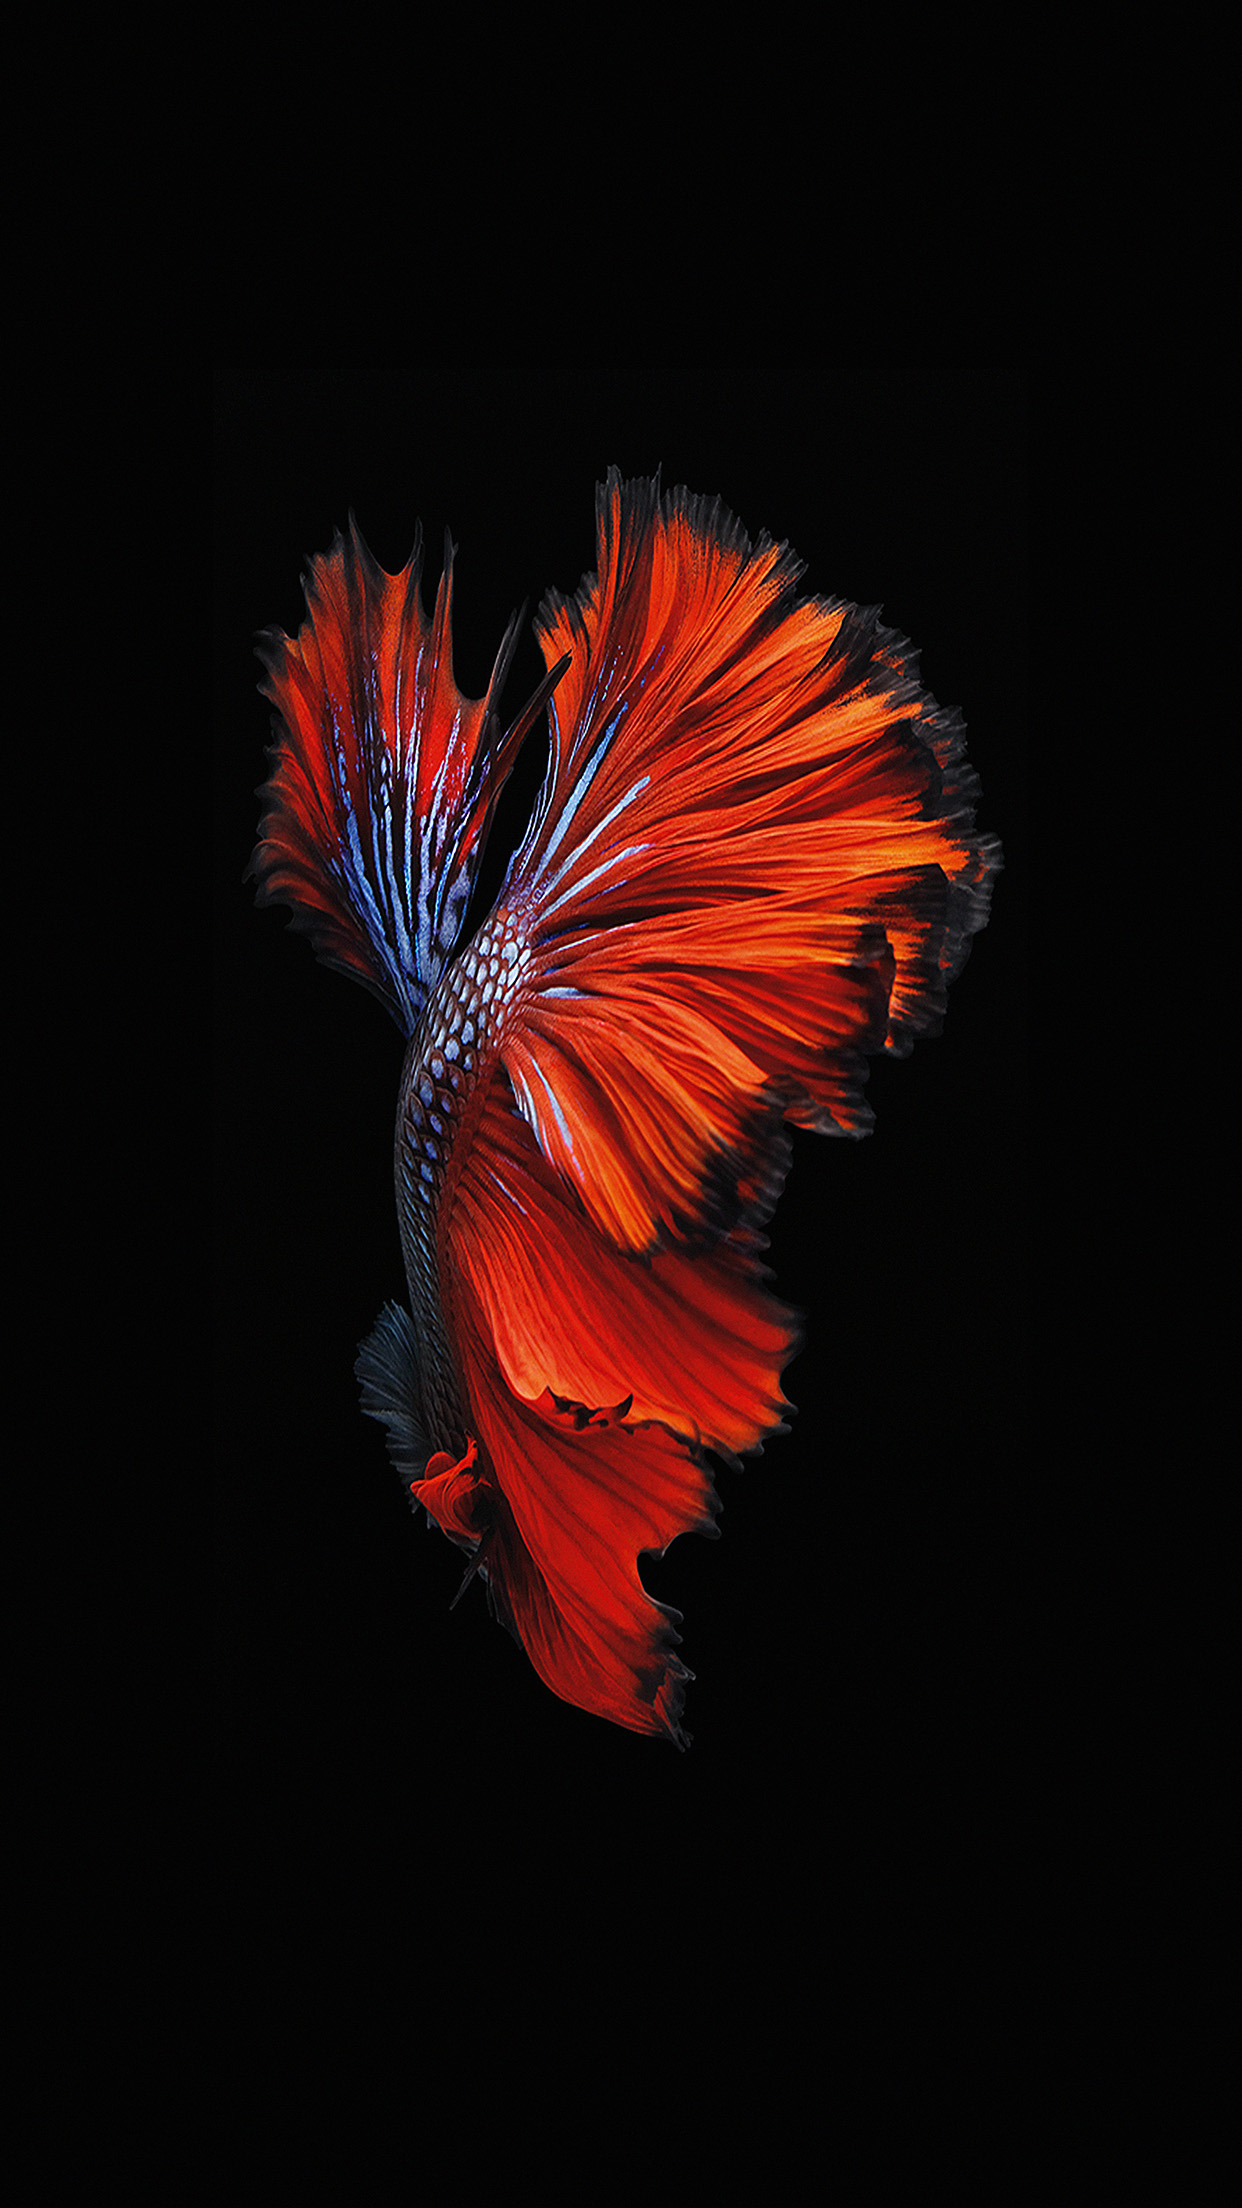 Iphone wallpaper an81 apple ios9 fish live - Iphone 7 love wallpaper hd ...